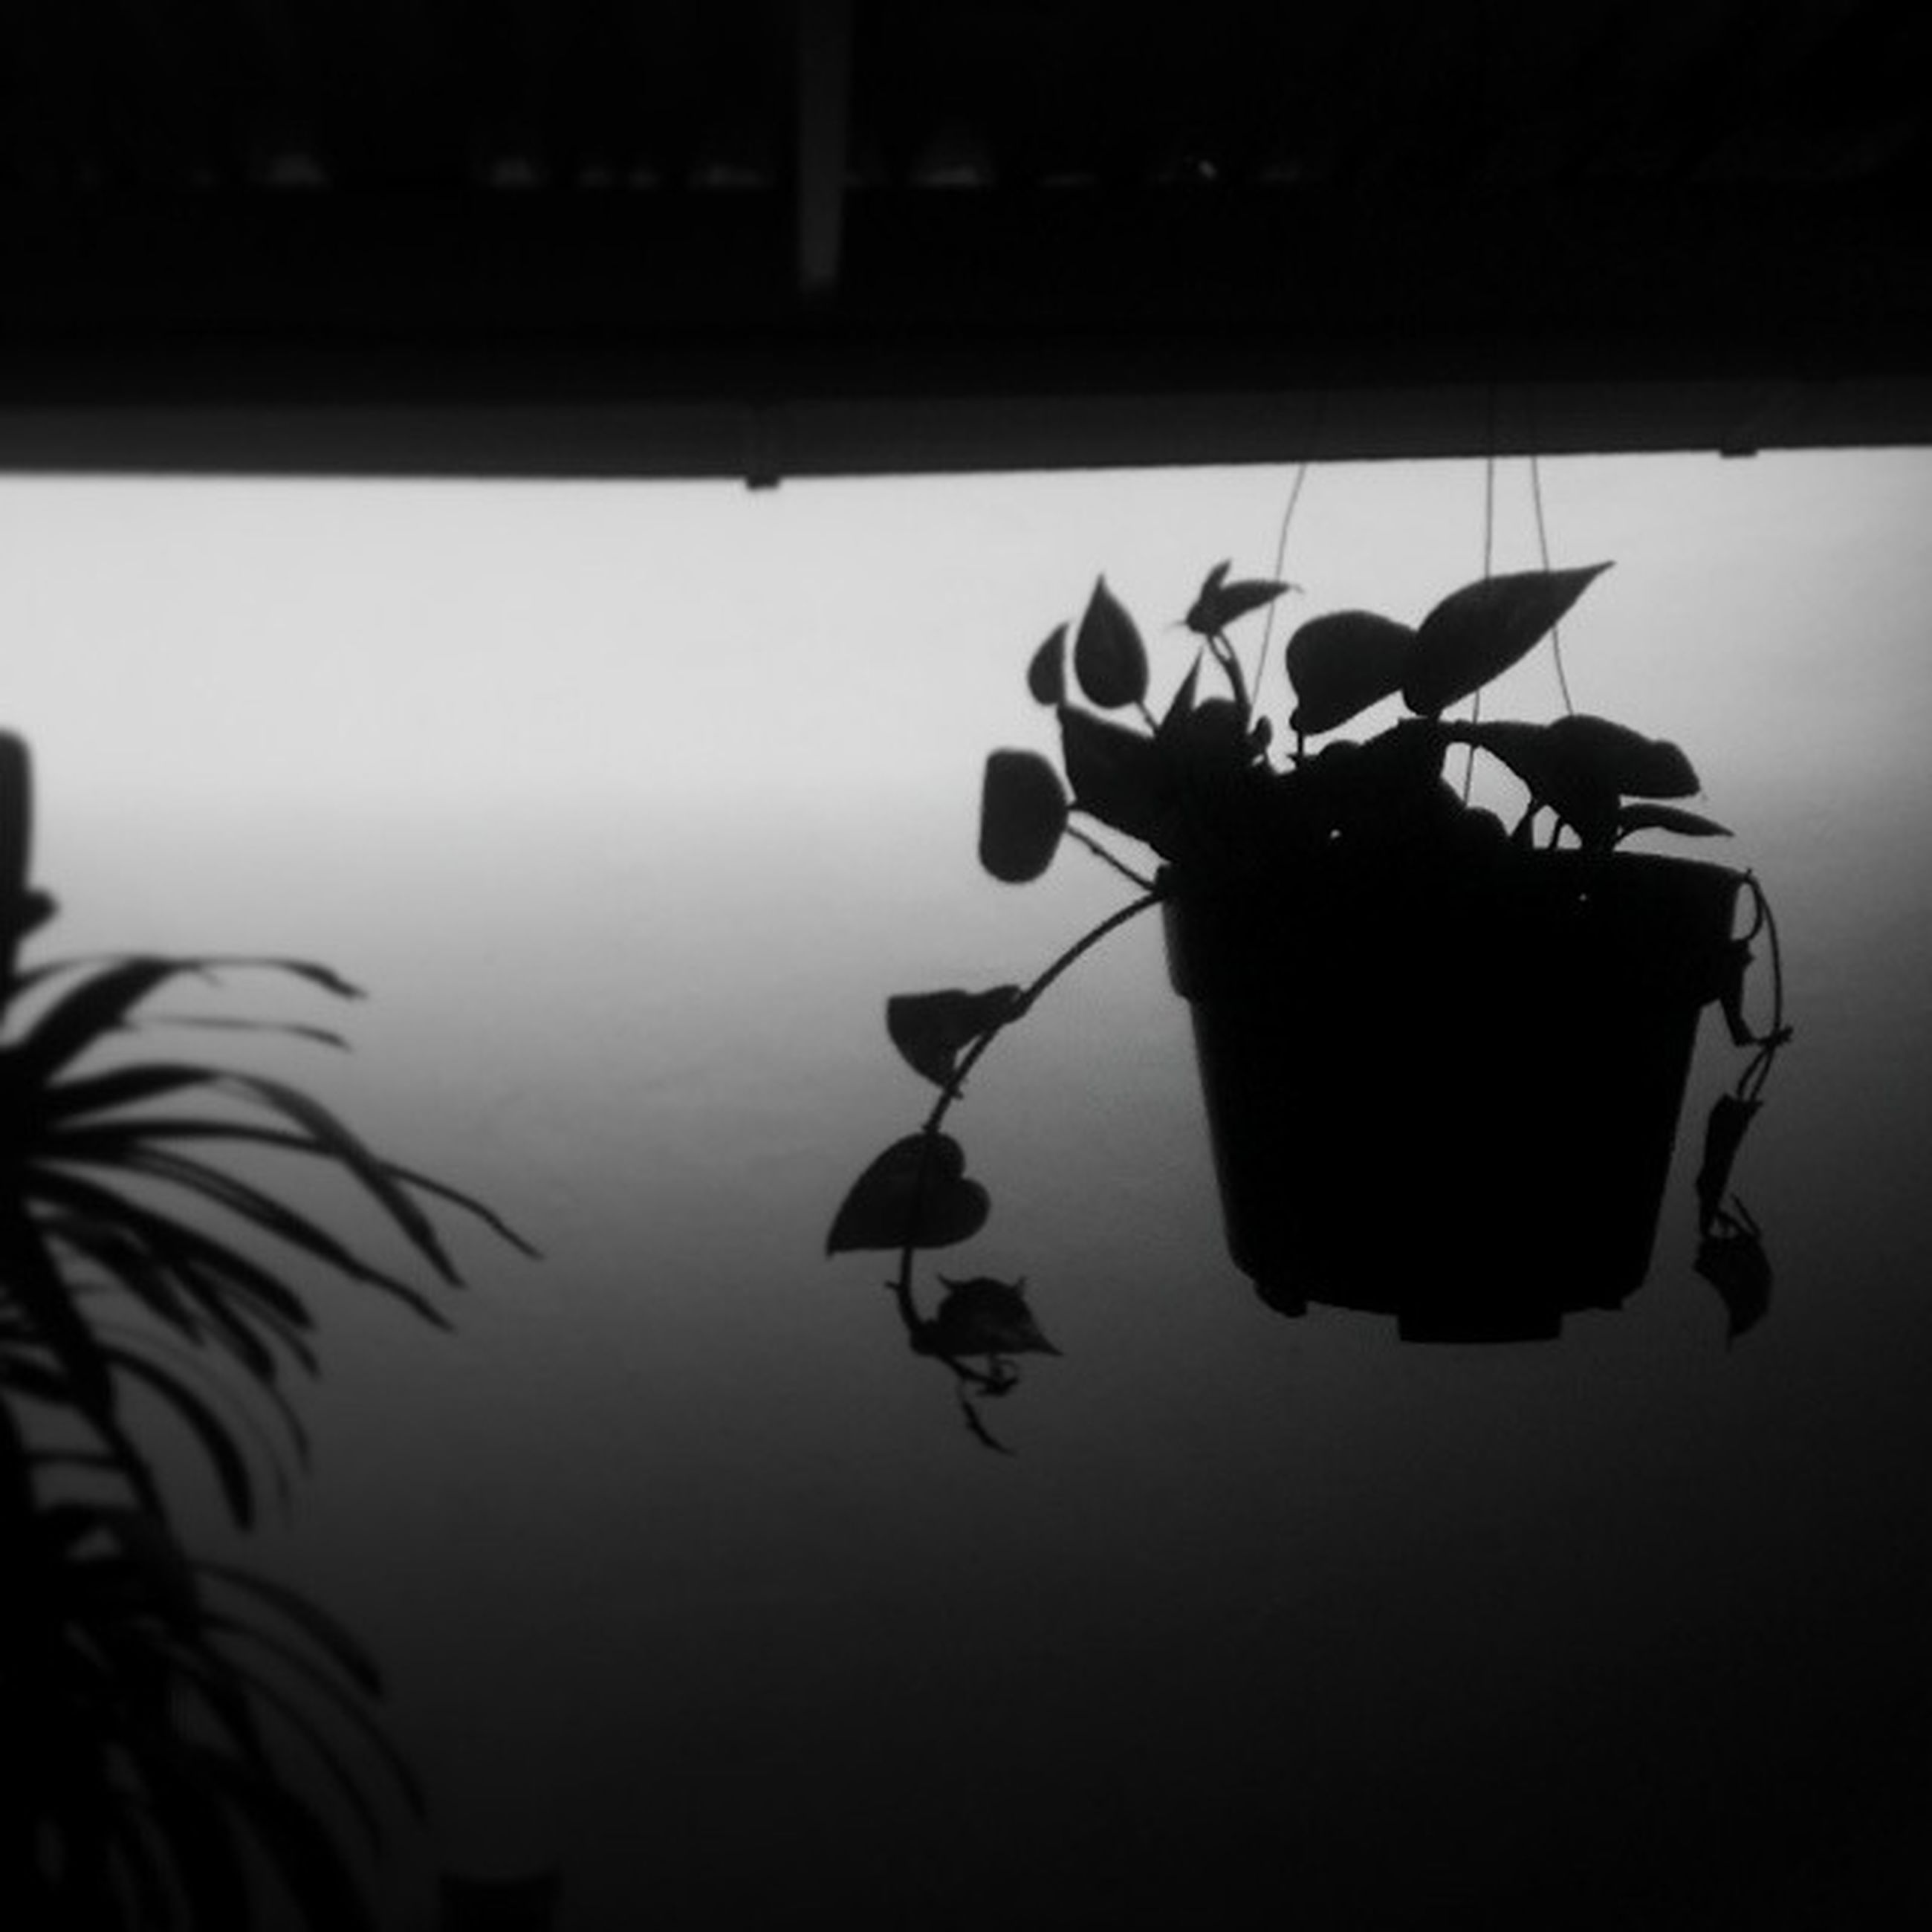 indoors, silhouette, water, table, reflection, dusk, no people, close-up, sunset, nature, hanging, leaf, plant, still life, sky, vignette, copy space, focus on foreground, decoration, tranquility